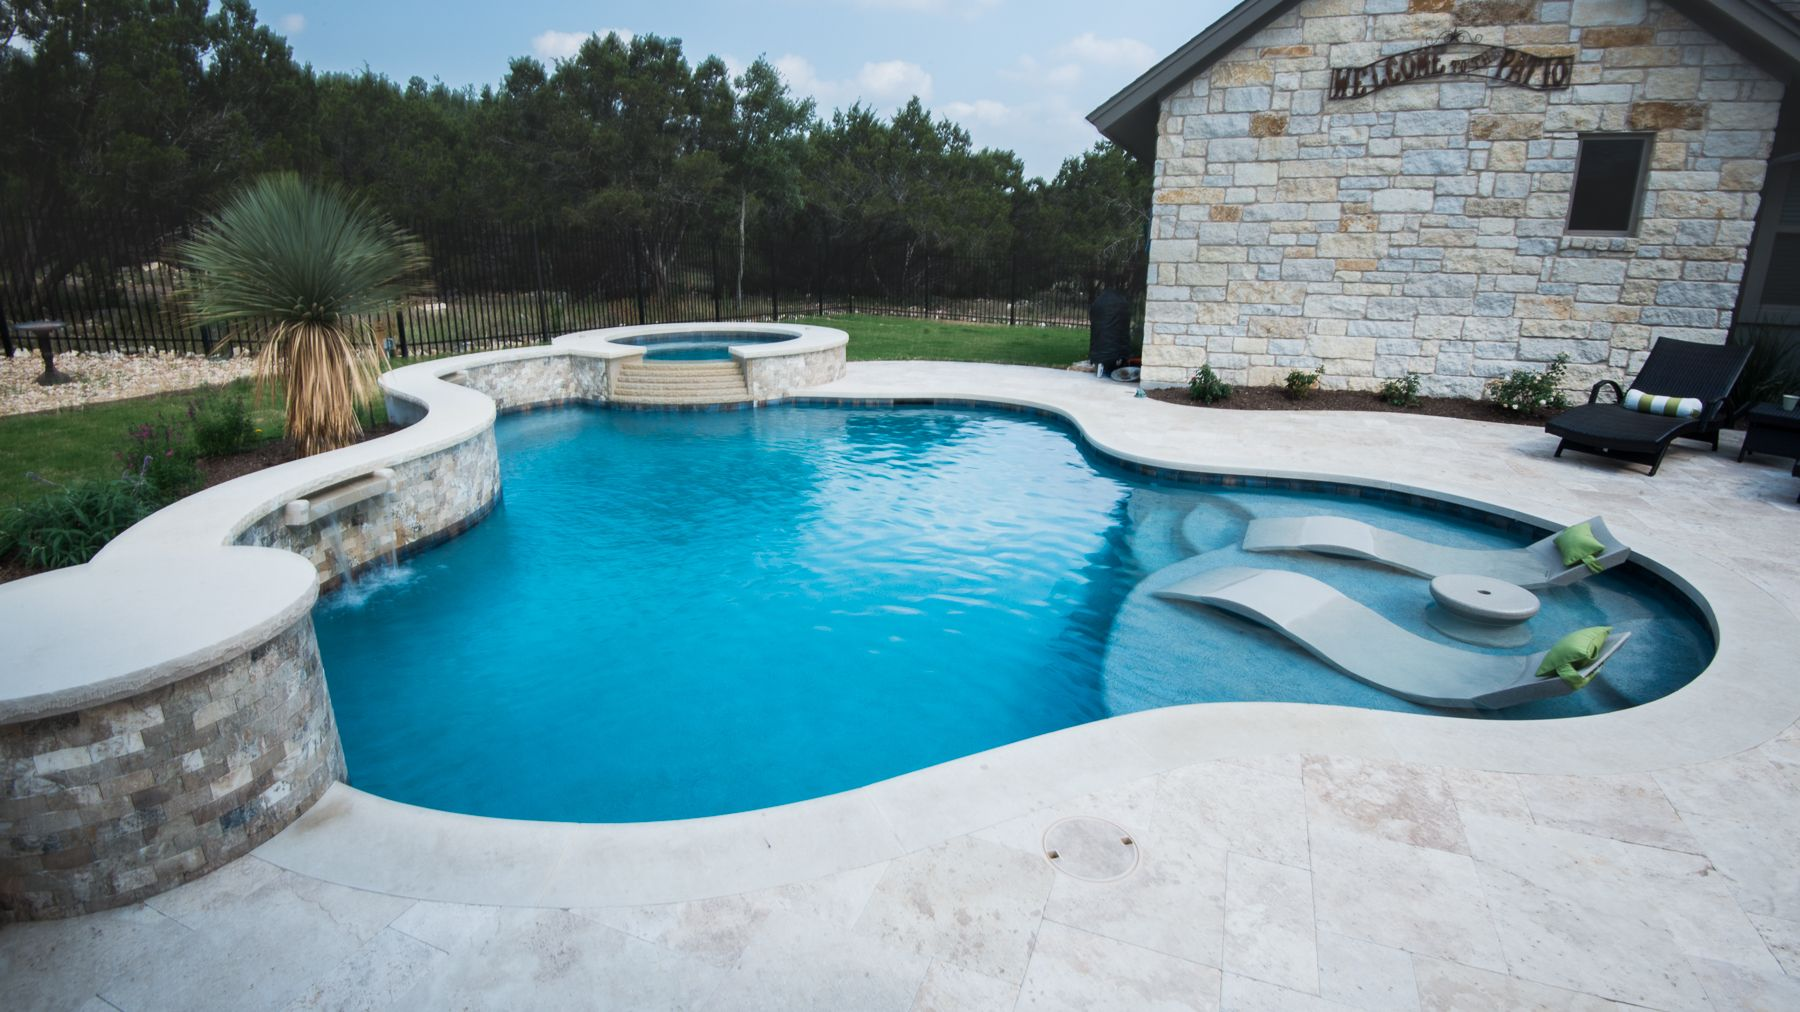 Freeform Pool With Ledge Loungers And Travertine Decking In Texas